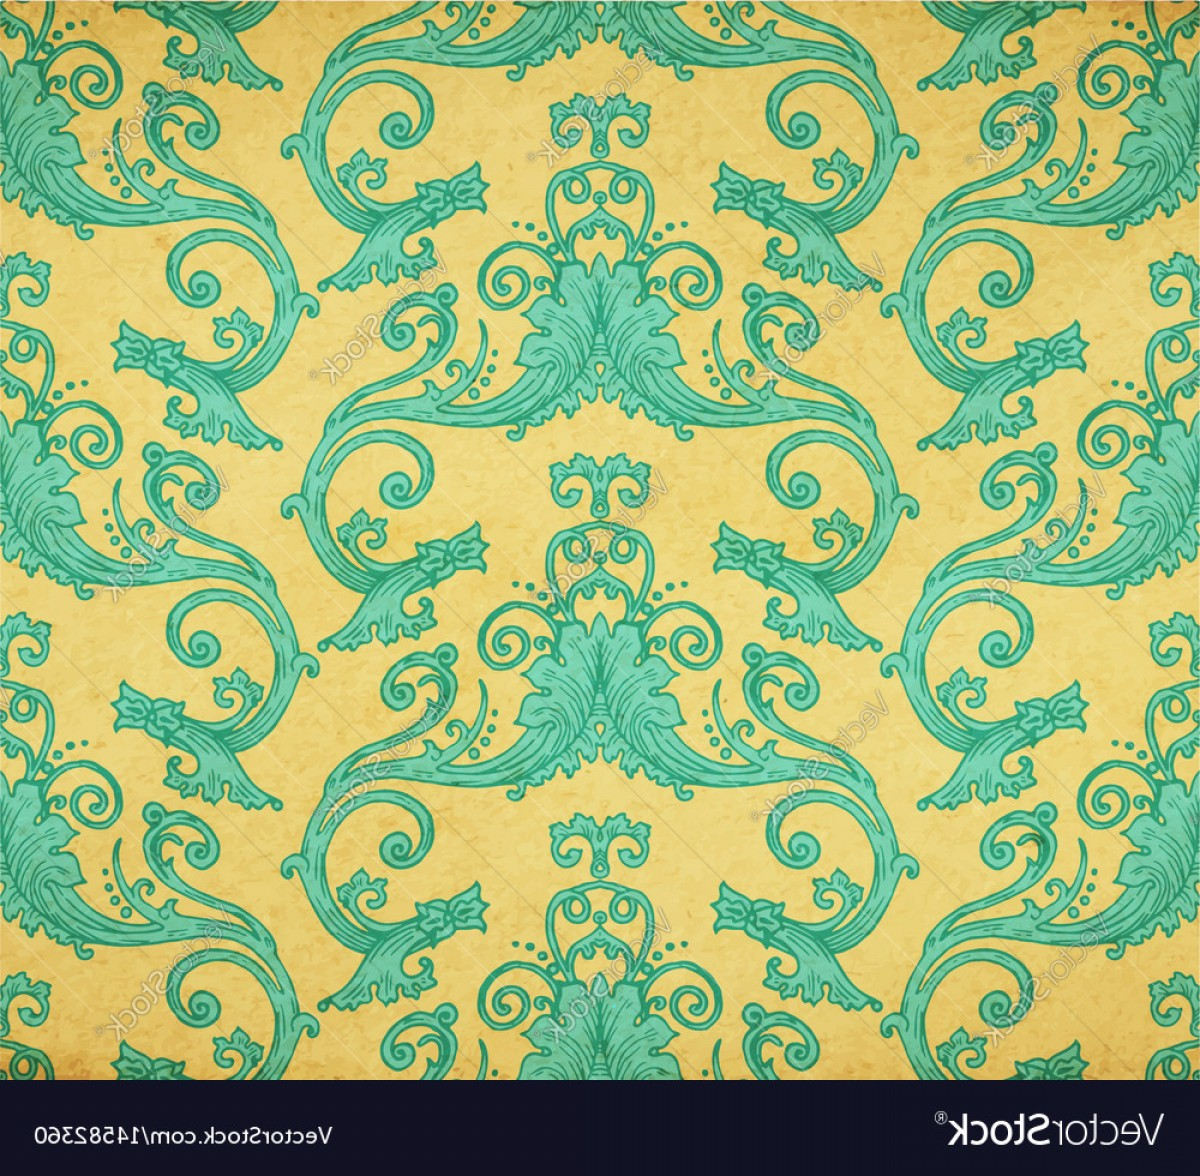 Aqua Victorian Vectors: Old Vintage Victorian Wallpaper Vector